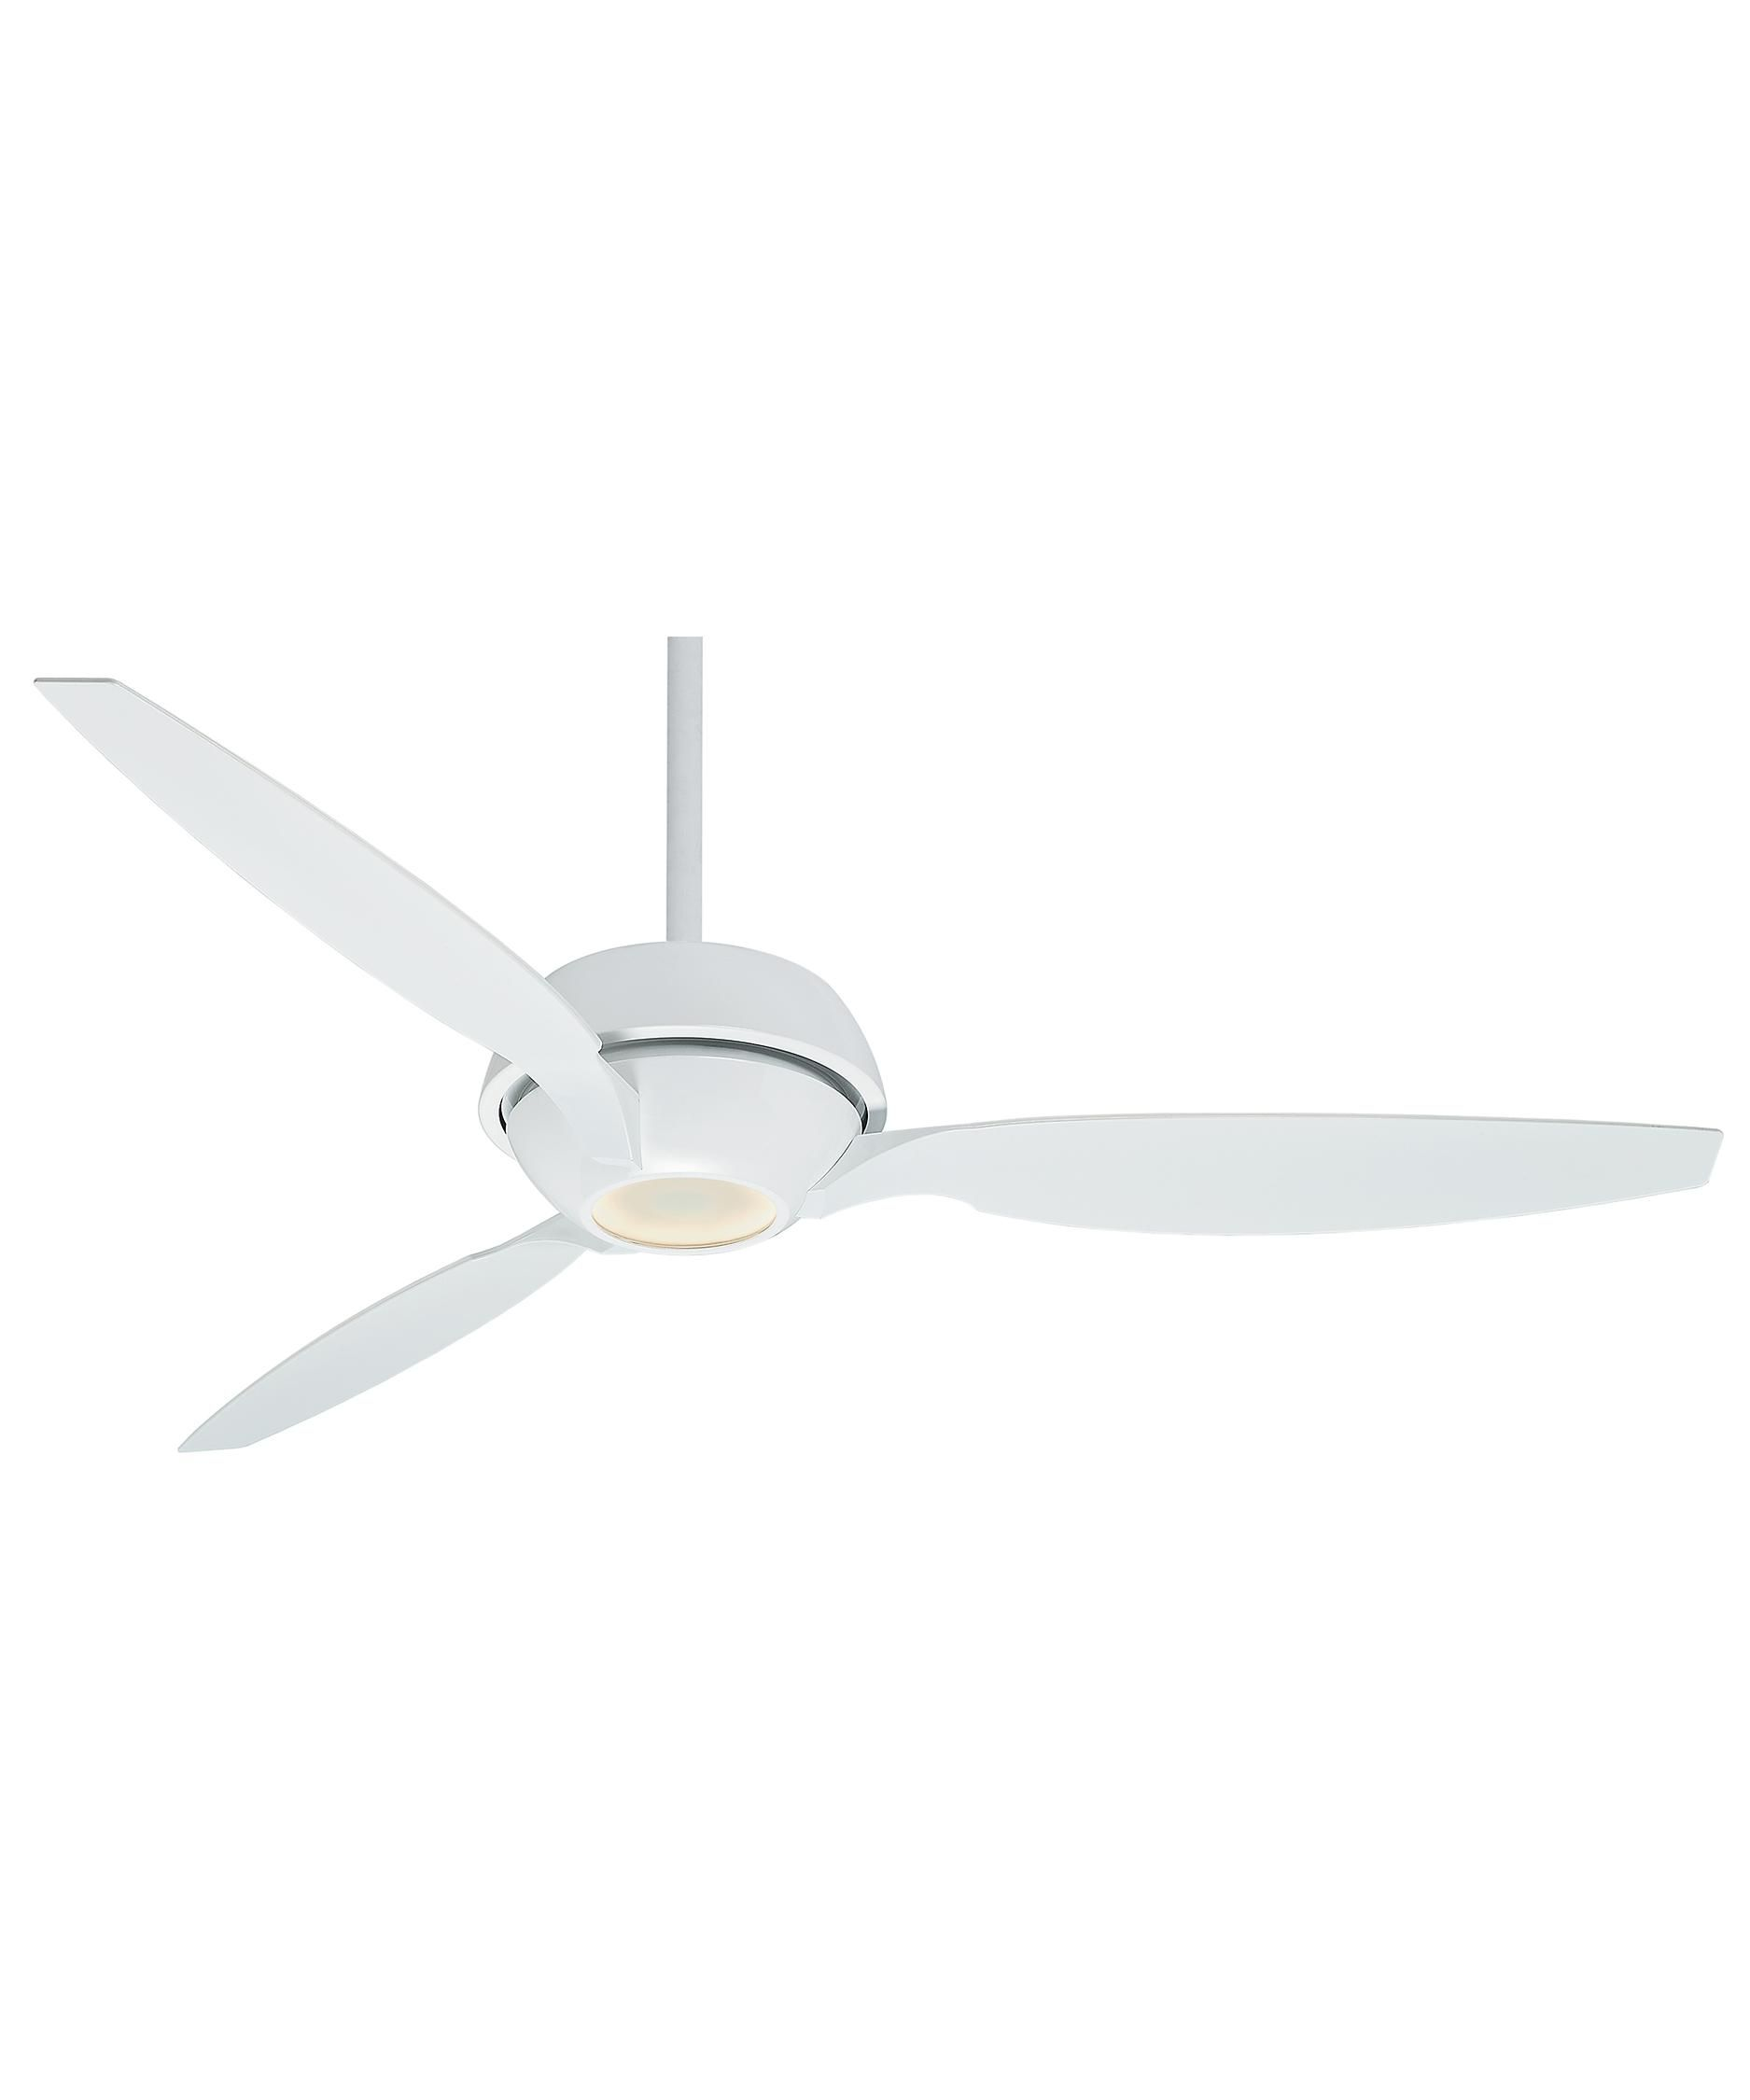 Riello 60 Inch Ceiling Fan With Light Kit By Casablanca Fan